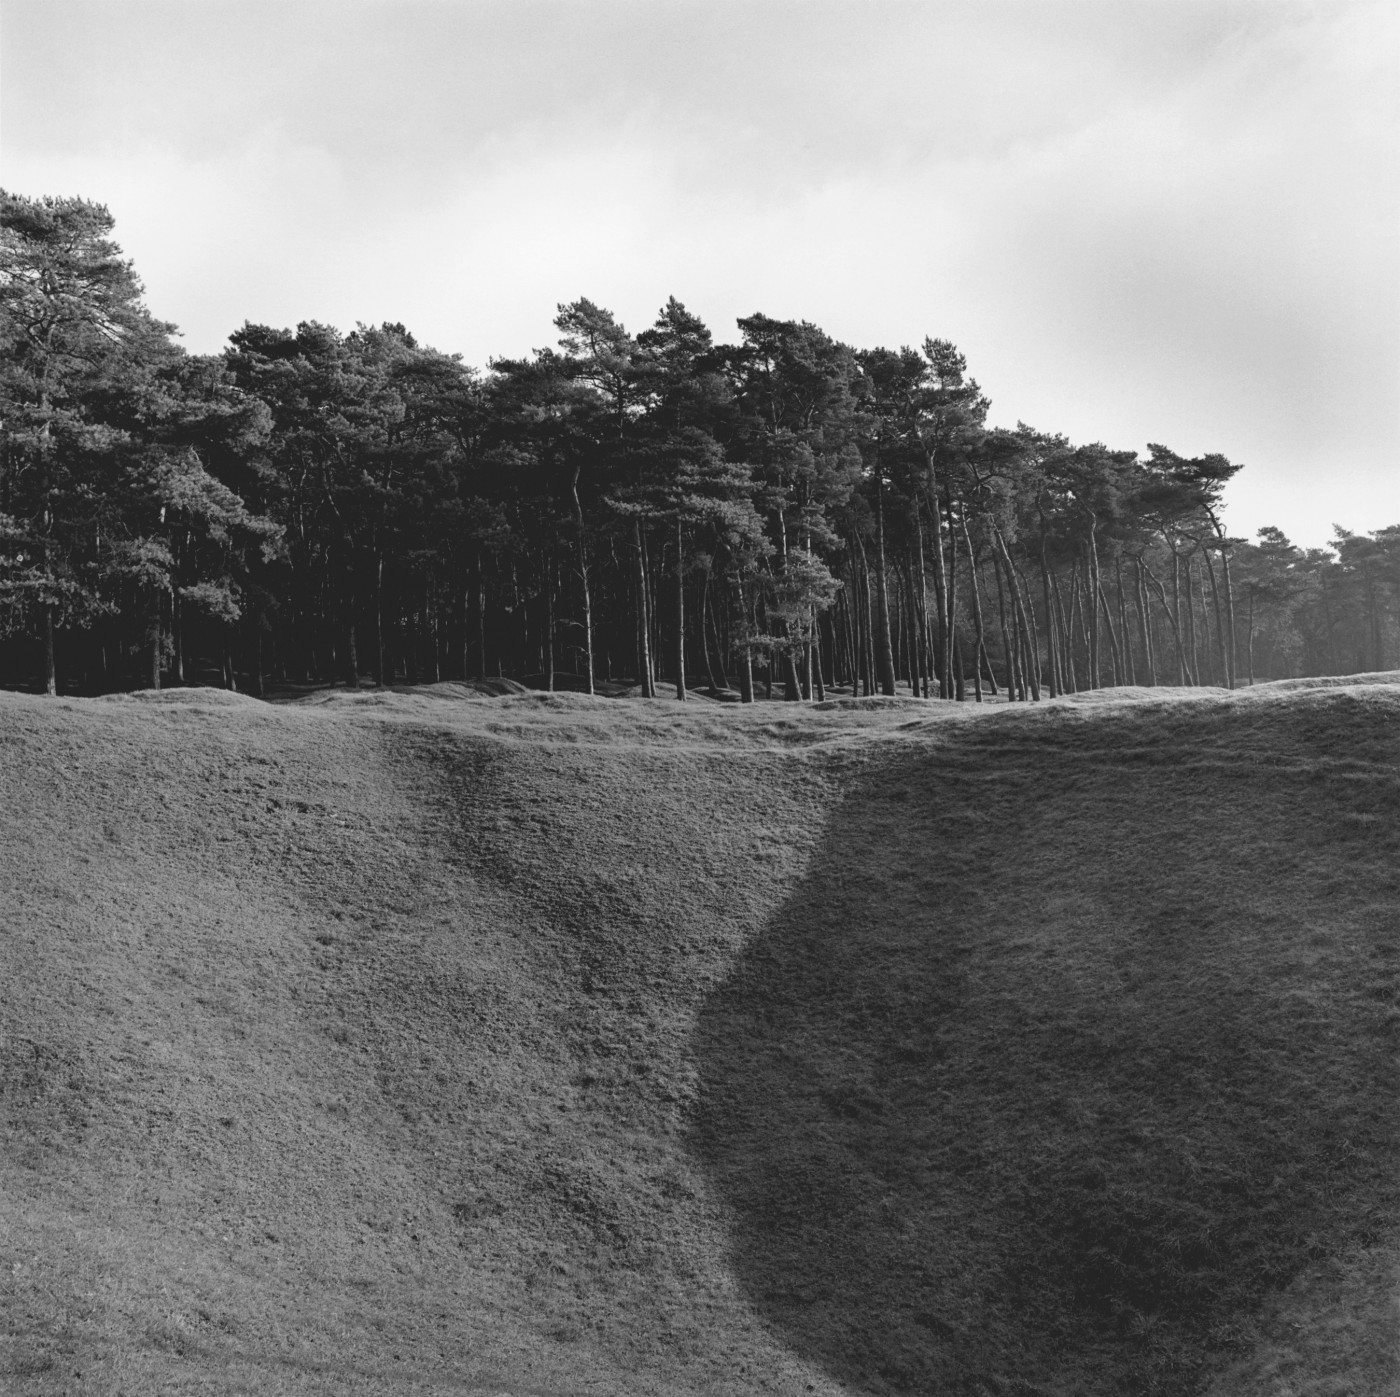 Peter MacCallum, </span><span><em>The Broadmarsh Mine Crater on the Preserved Battlefield, 2005</em>, </span><span>silver print  14